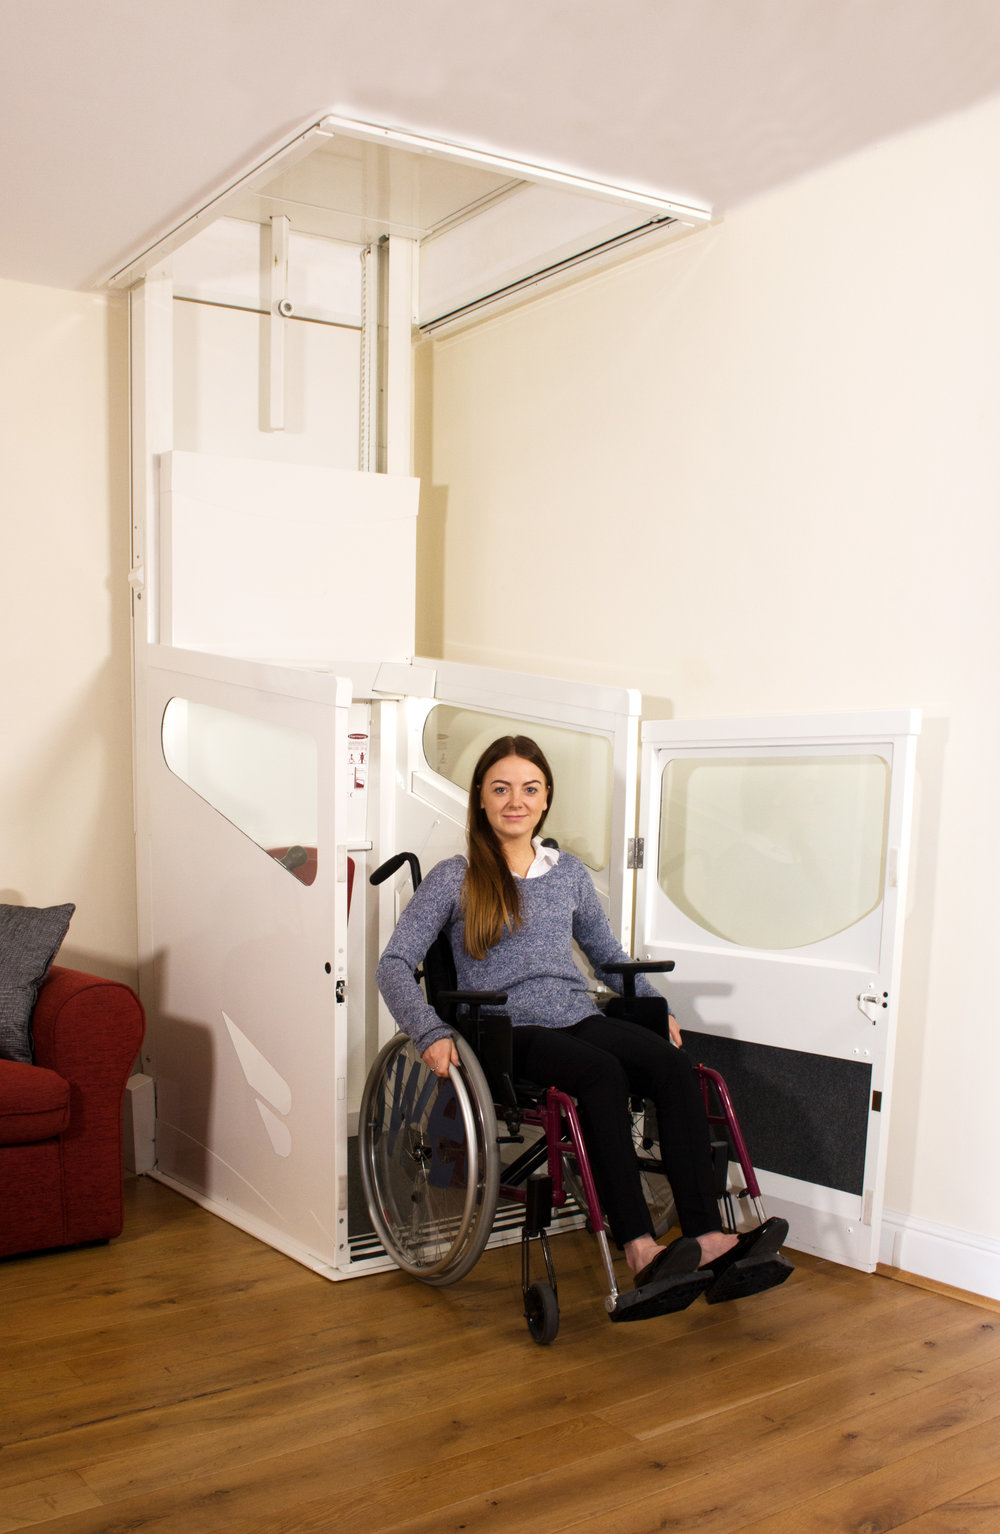 terry-harmony-home-wheelchair-lift.jpg